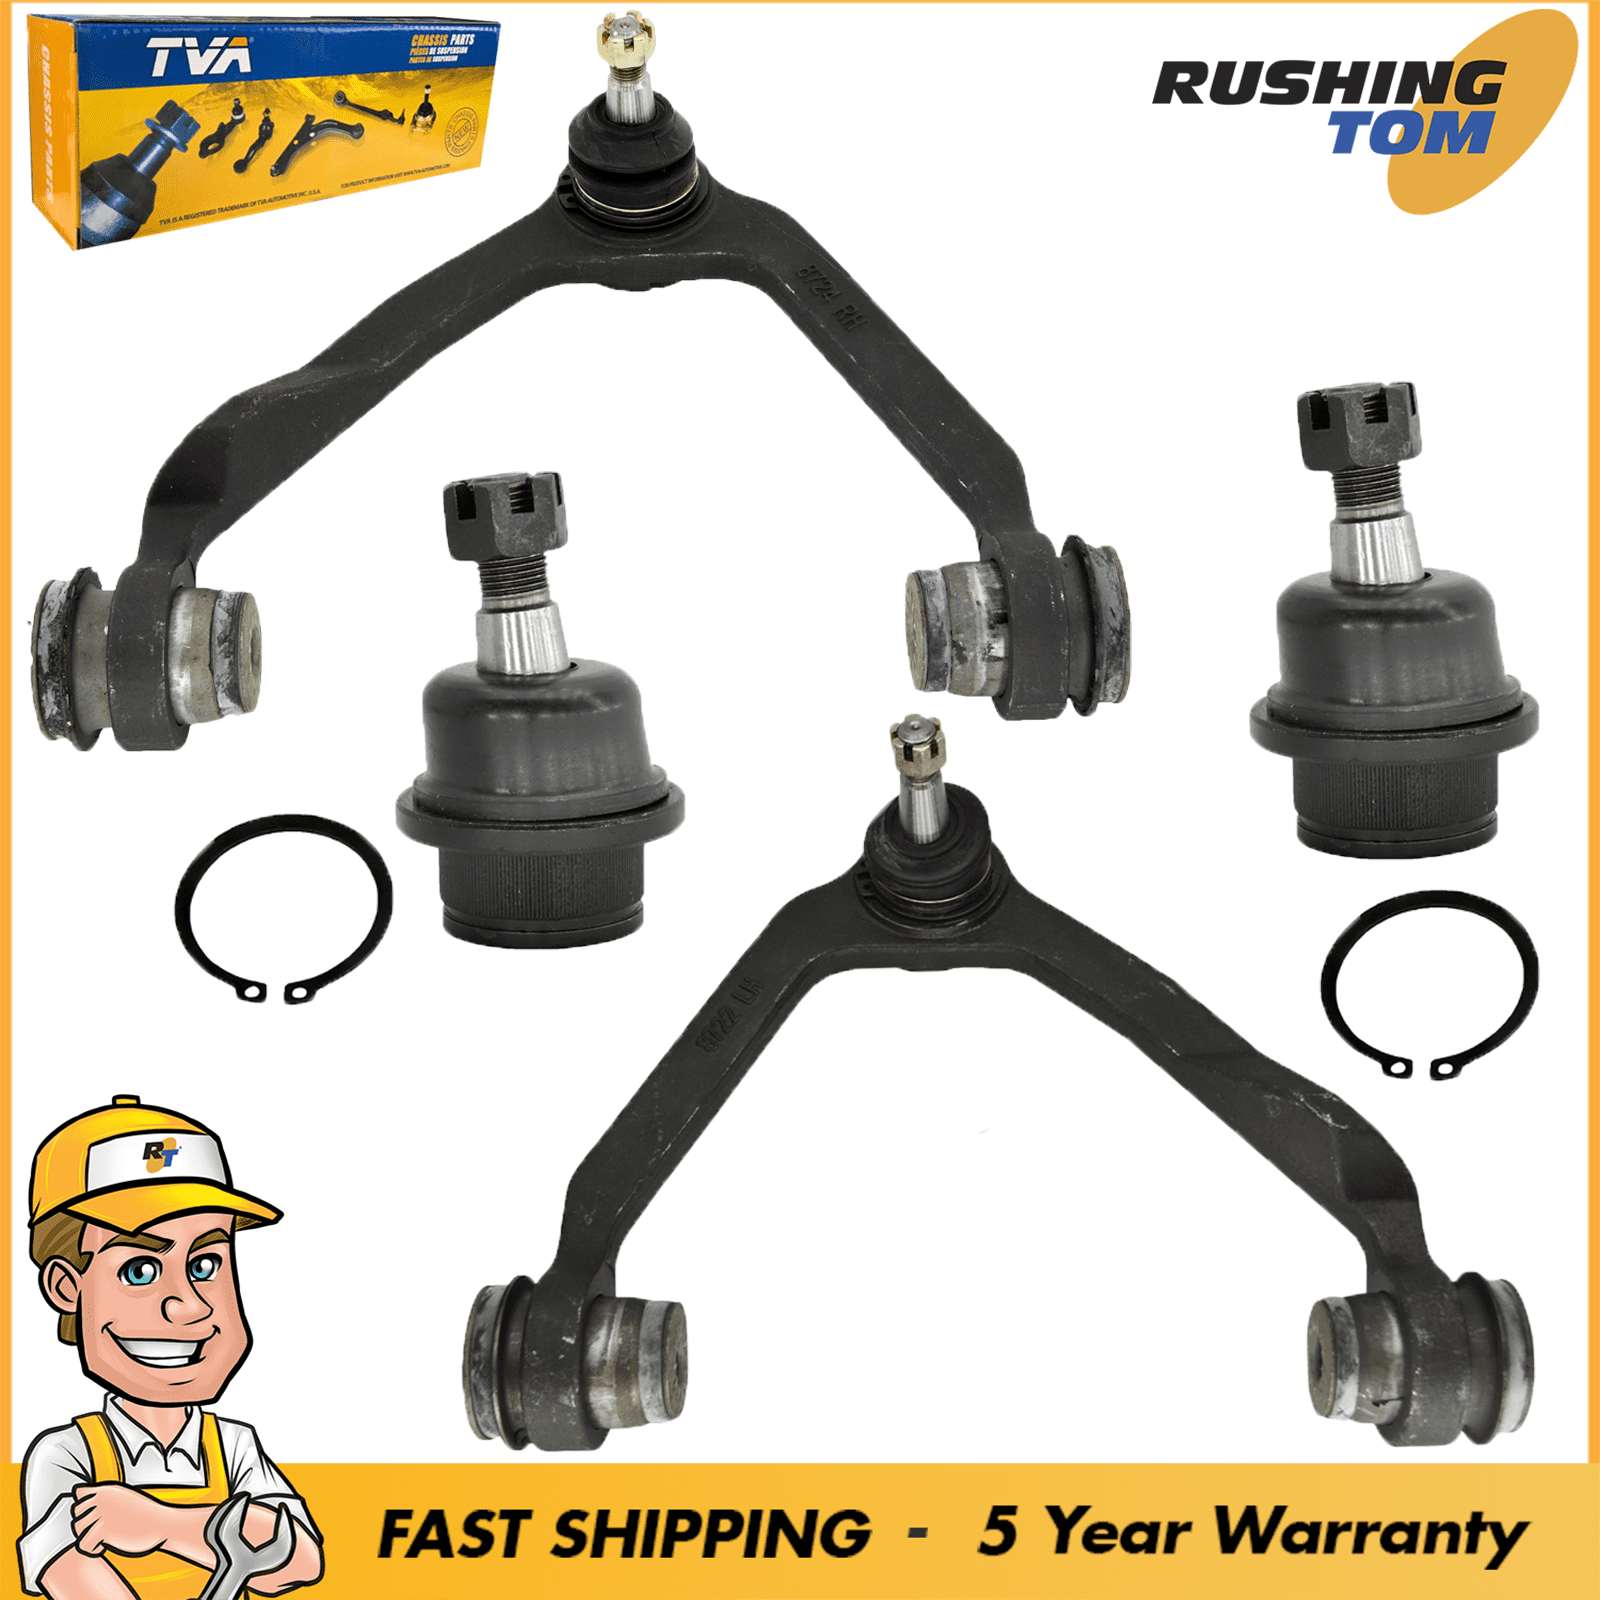 4 Piece Suspension Kit for Ford Expedition F-150 F-250 /& Lincoln Blackwood Navigator Front Upper /& Lower Ball Joints 2WD//4WD